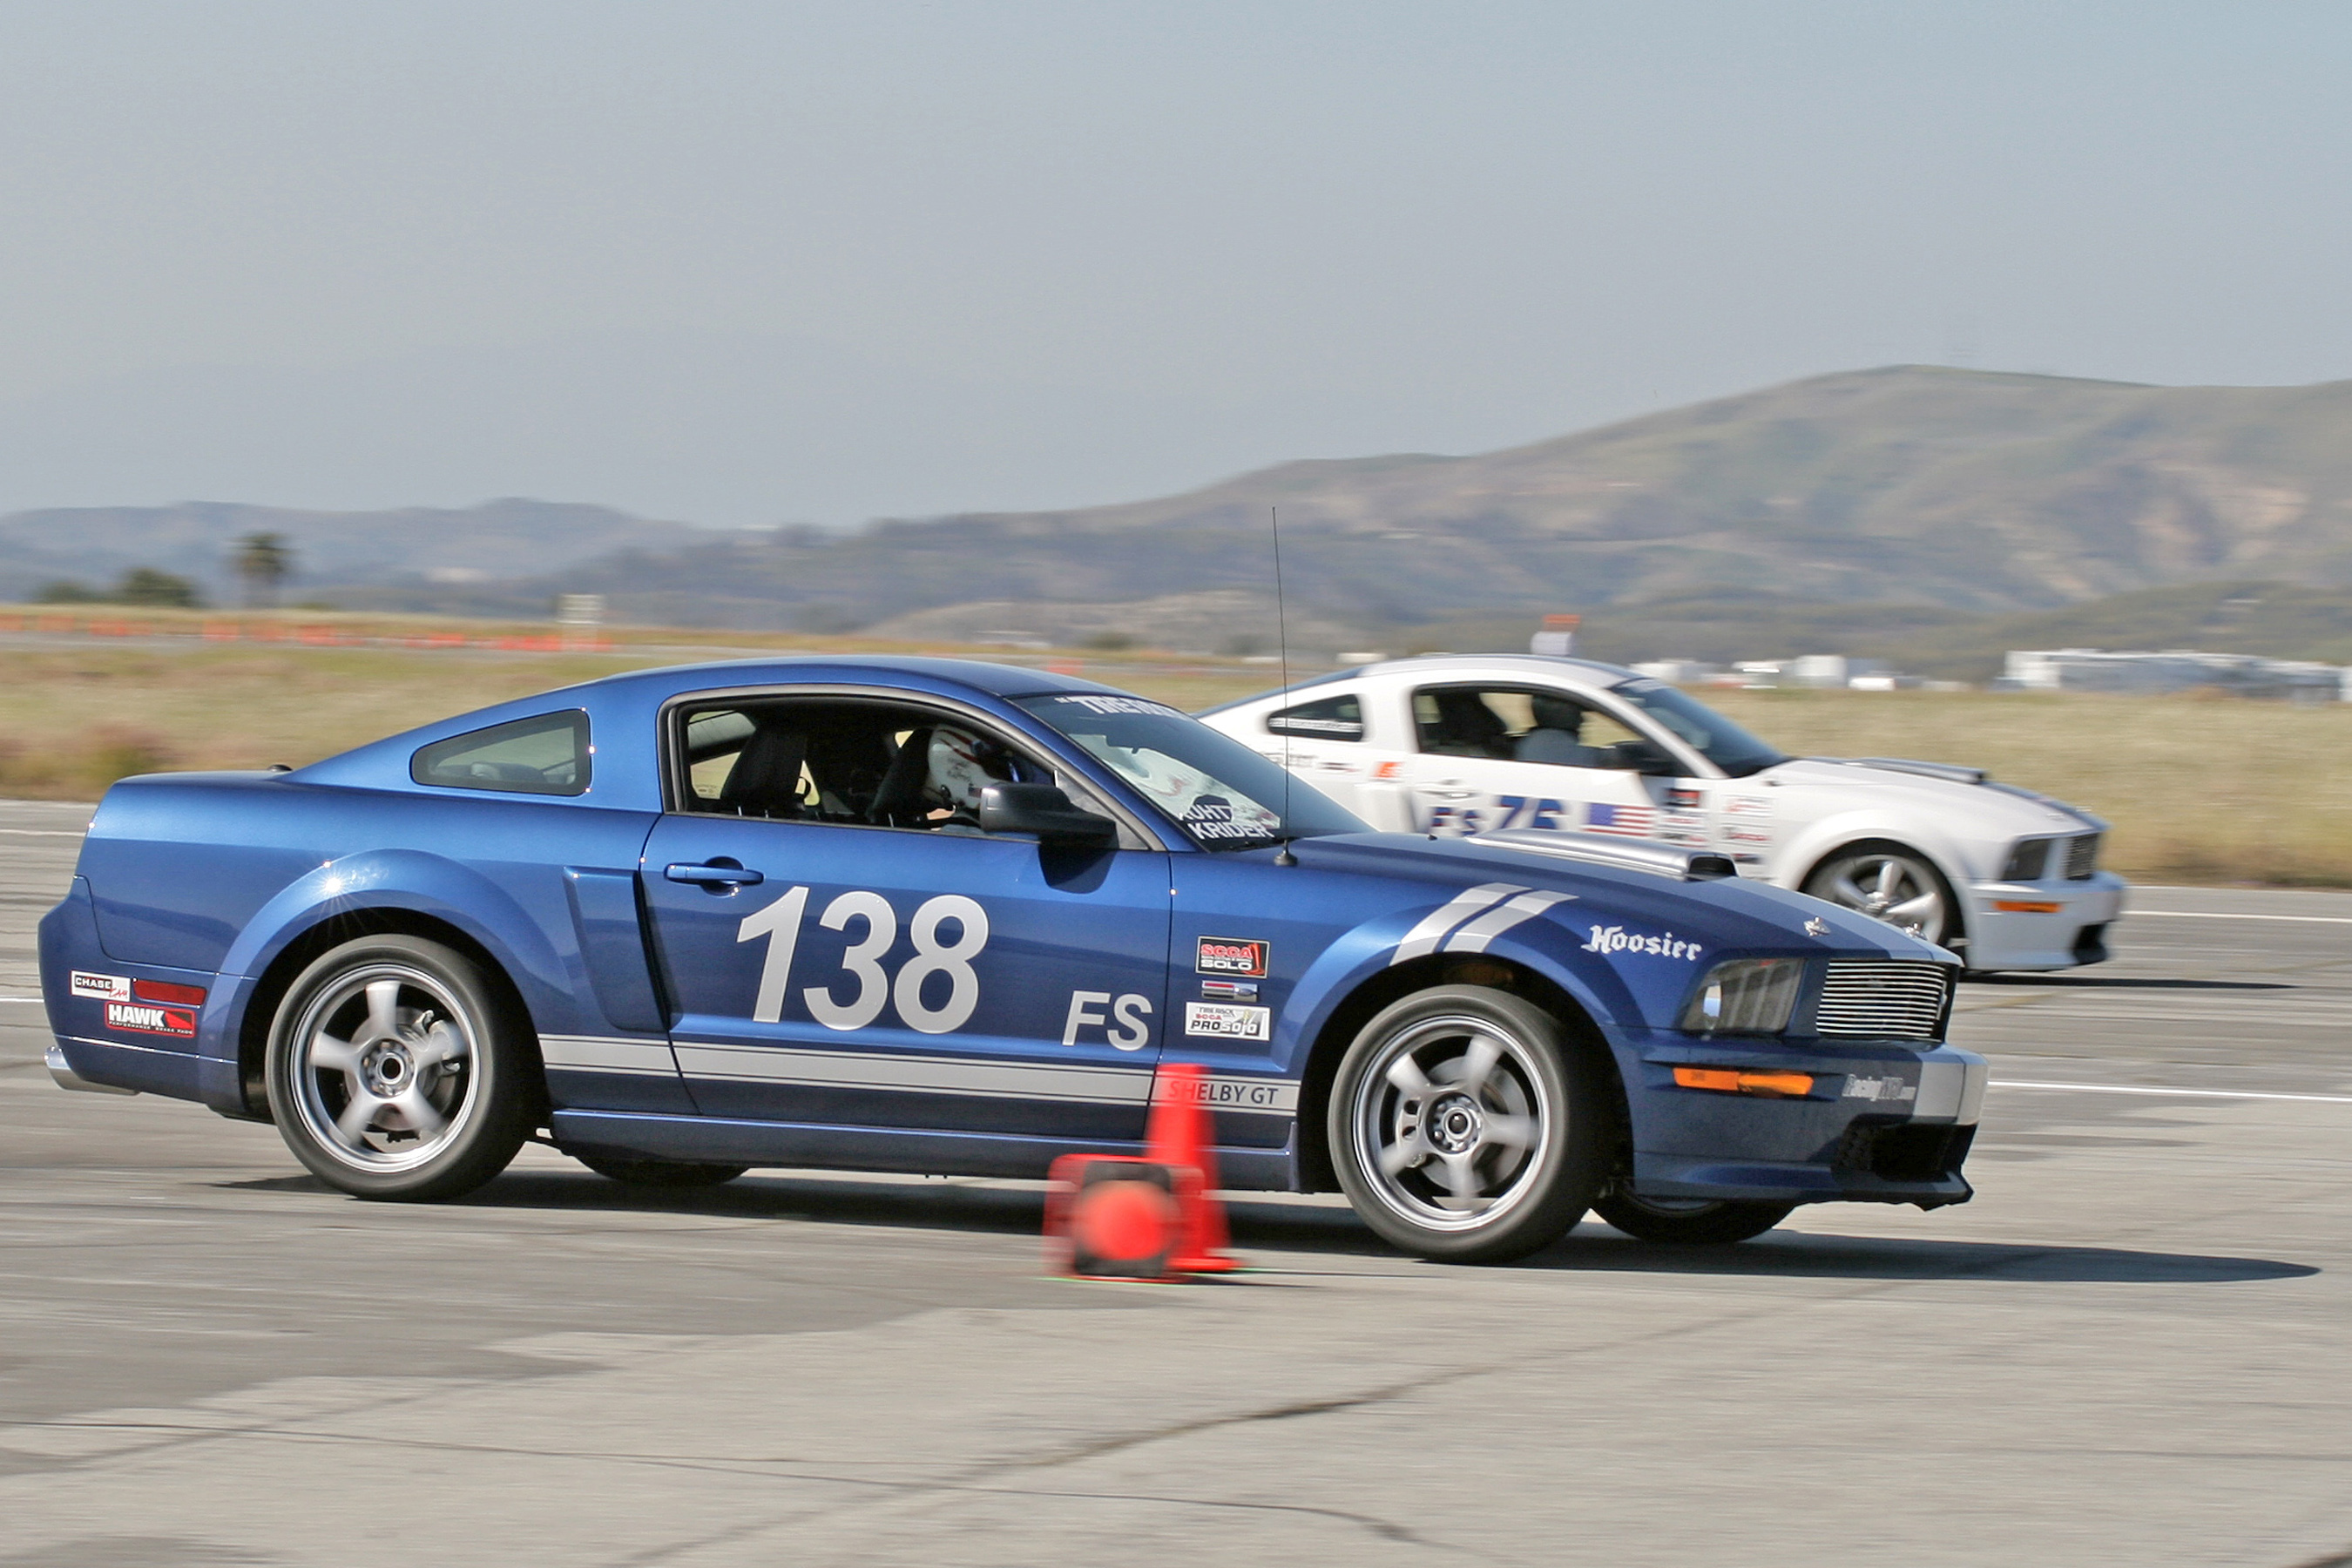 KriderRacing38's 2008 Ford Mustang